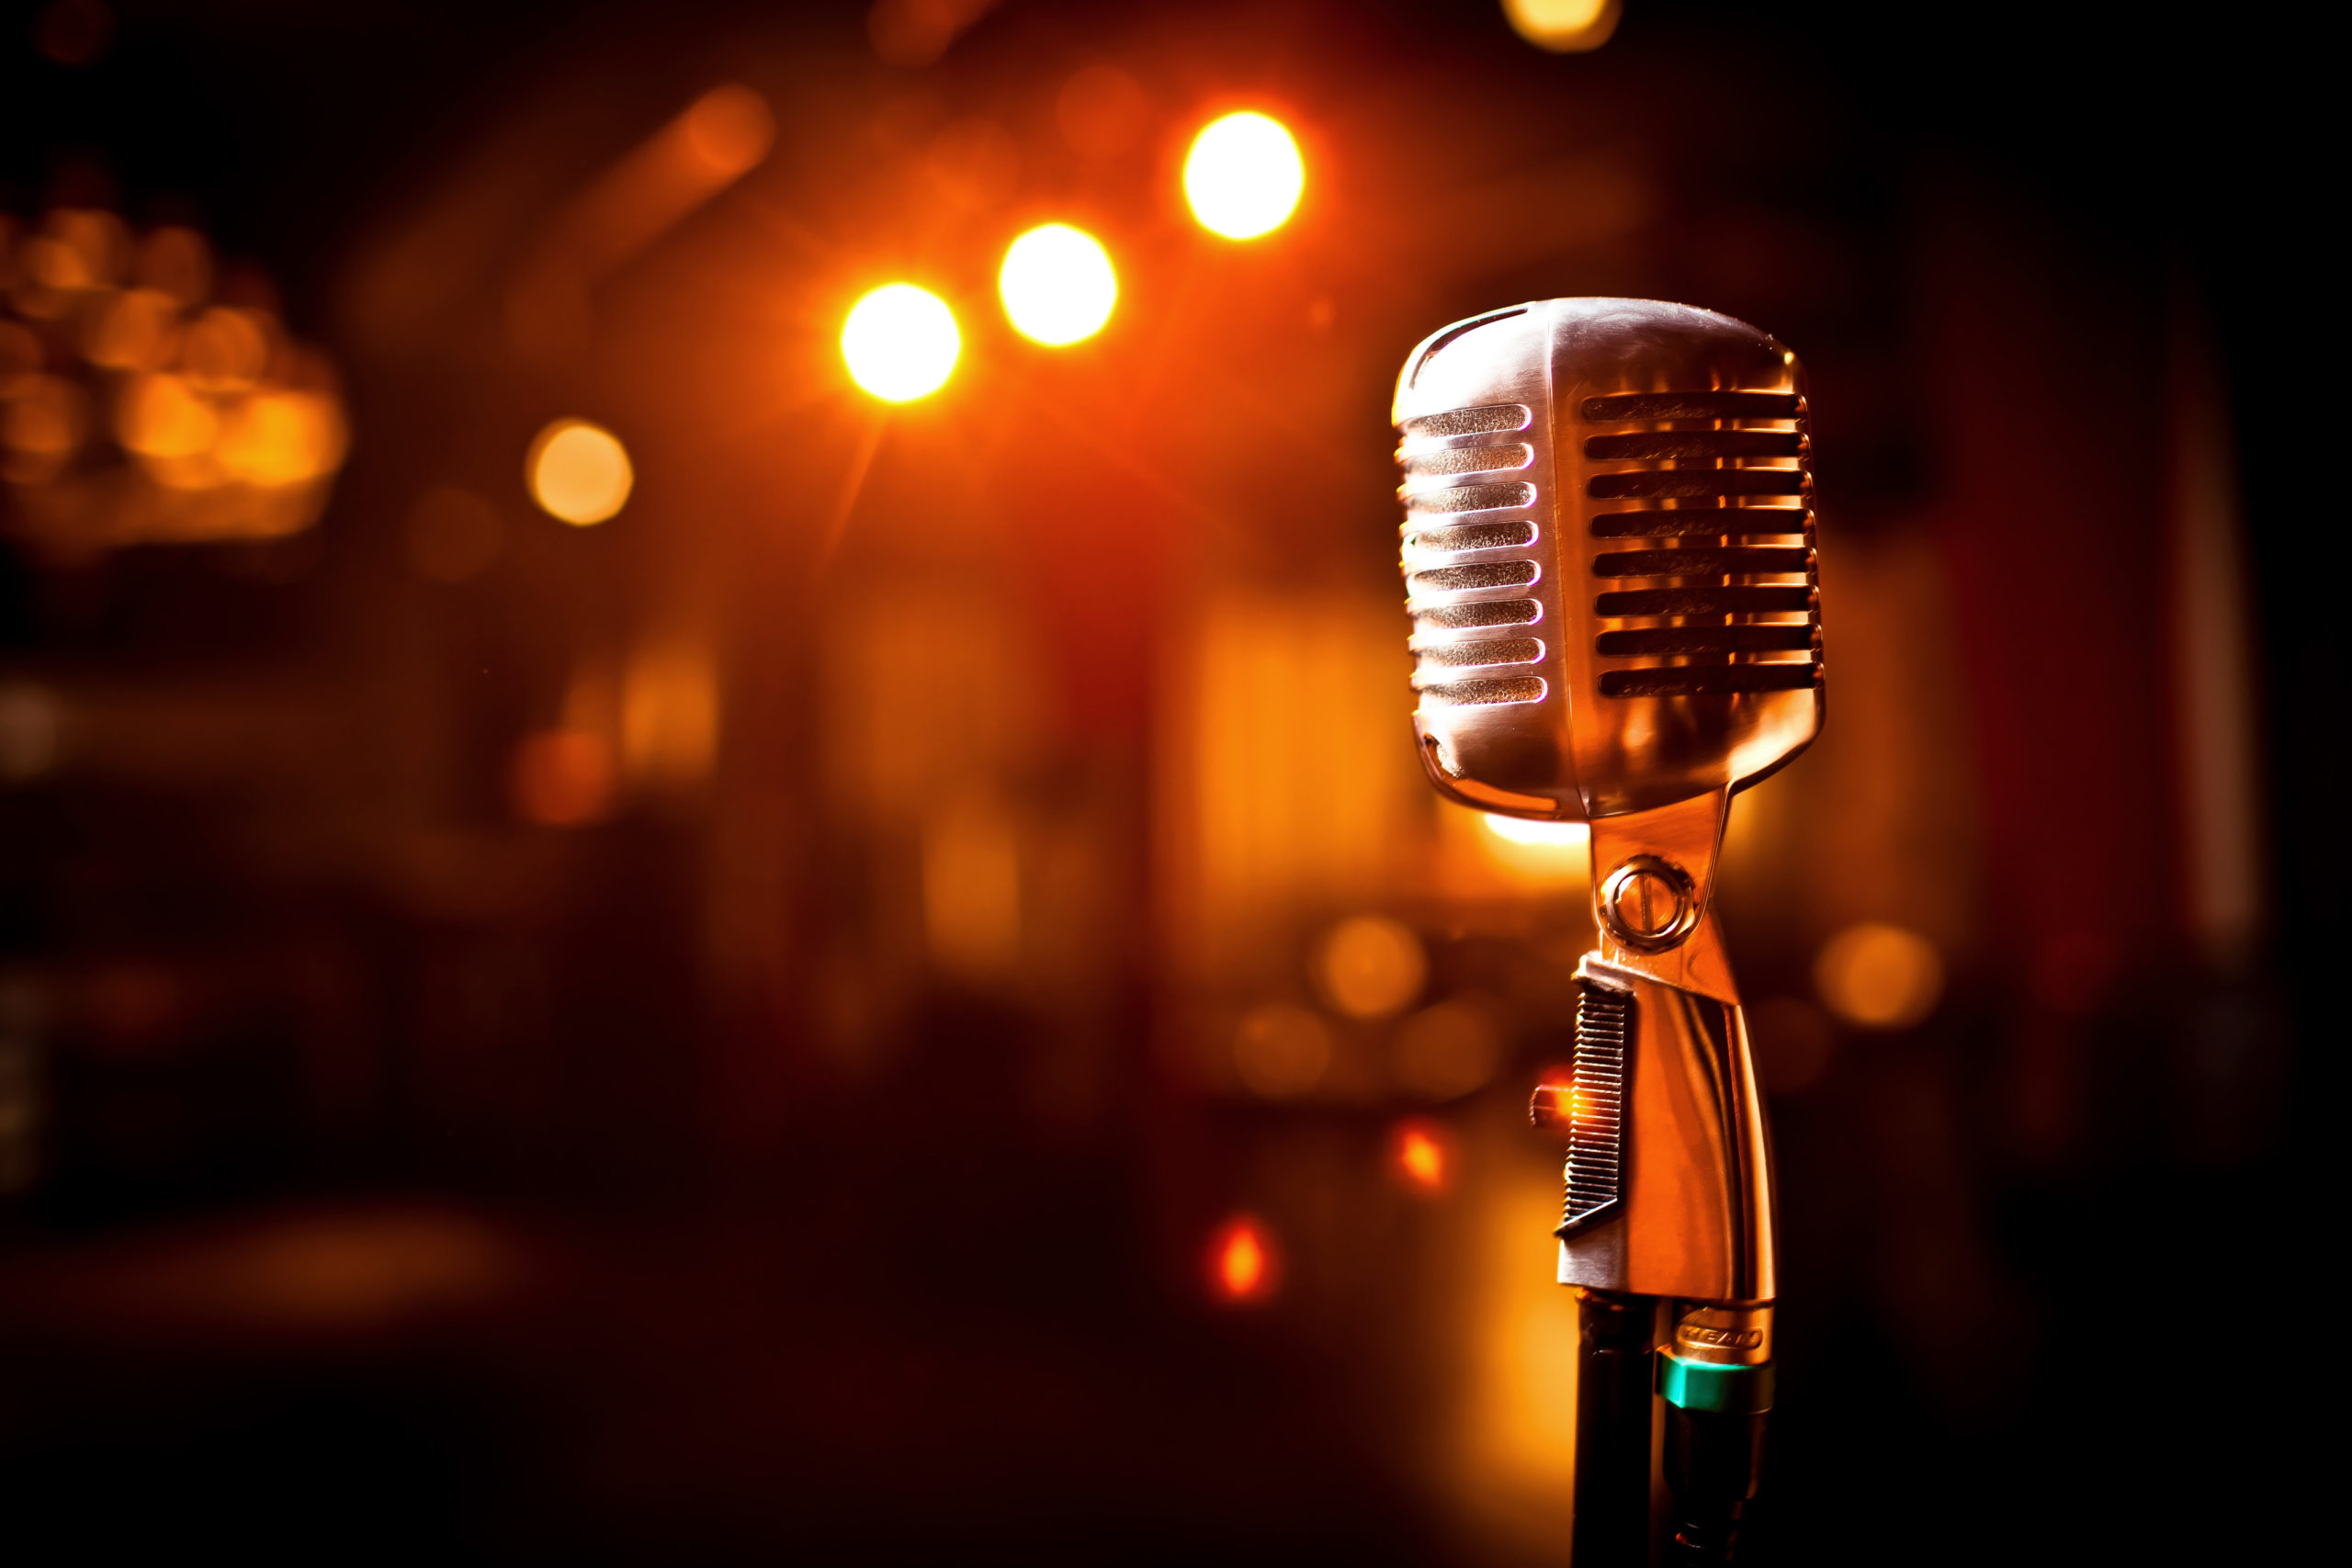 Retro Microphone On Stage